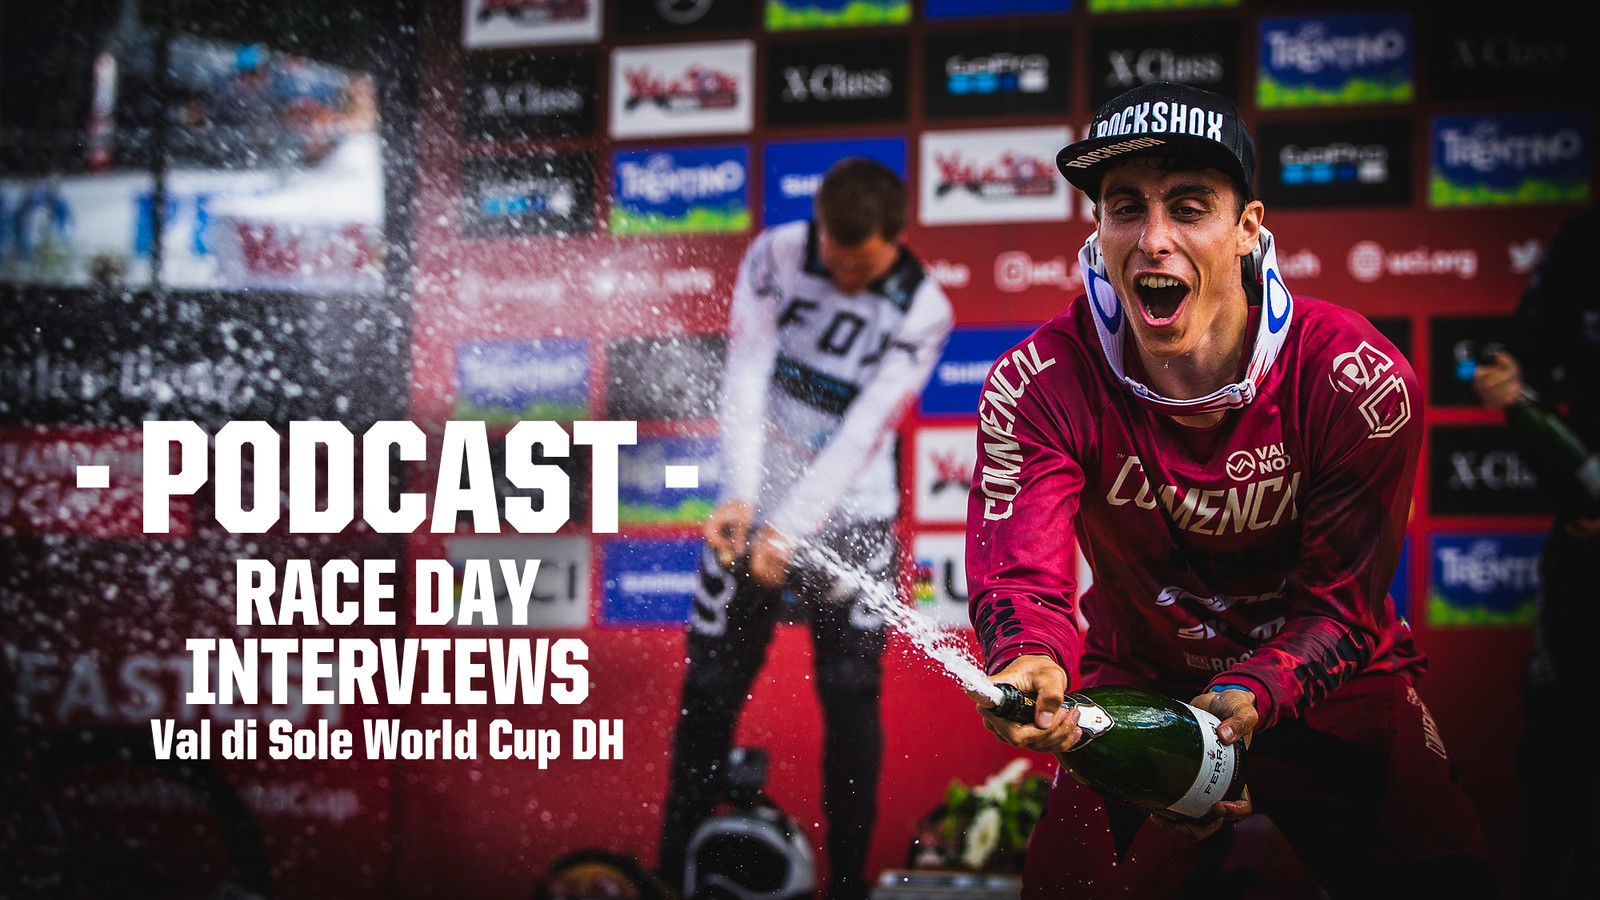 PODCAST - Val di Sole World Cup Downhill Racer Interviews